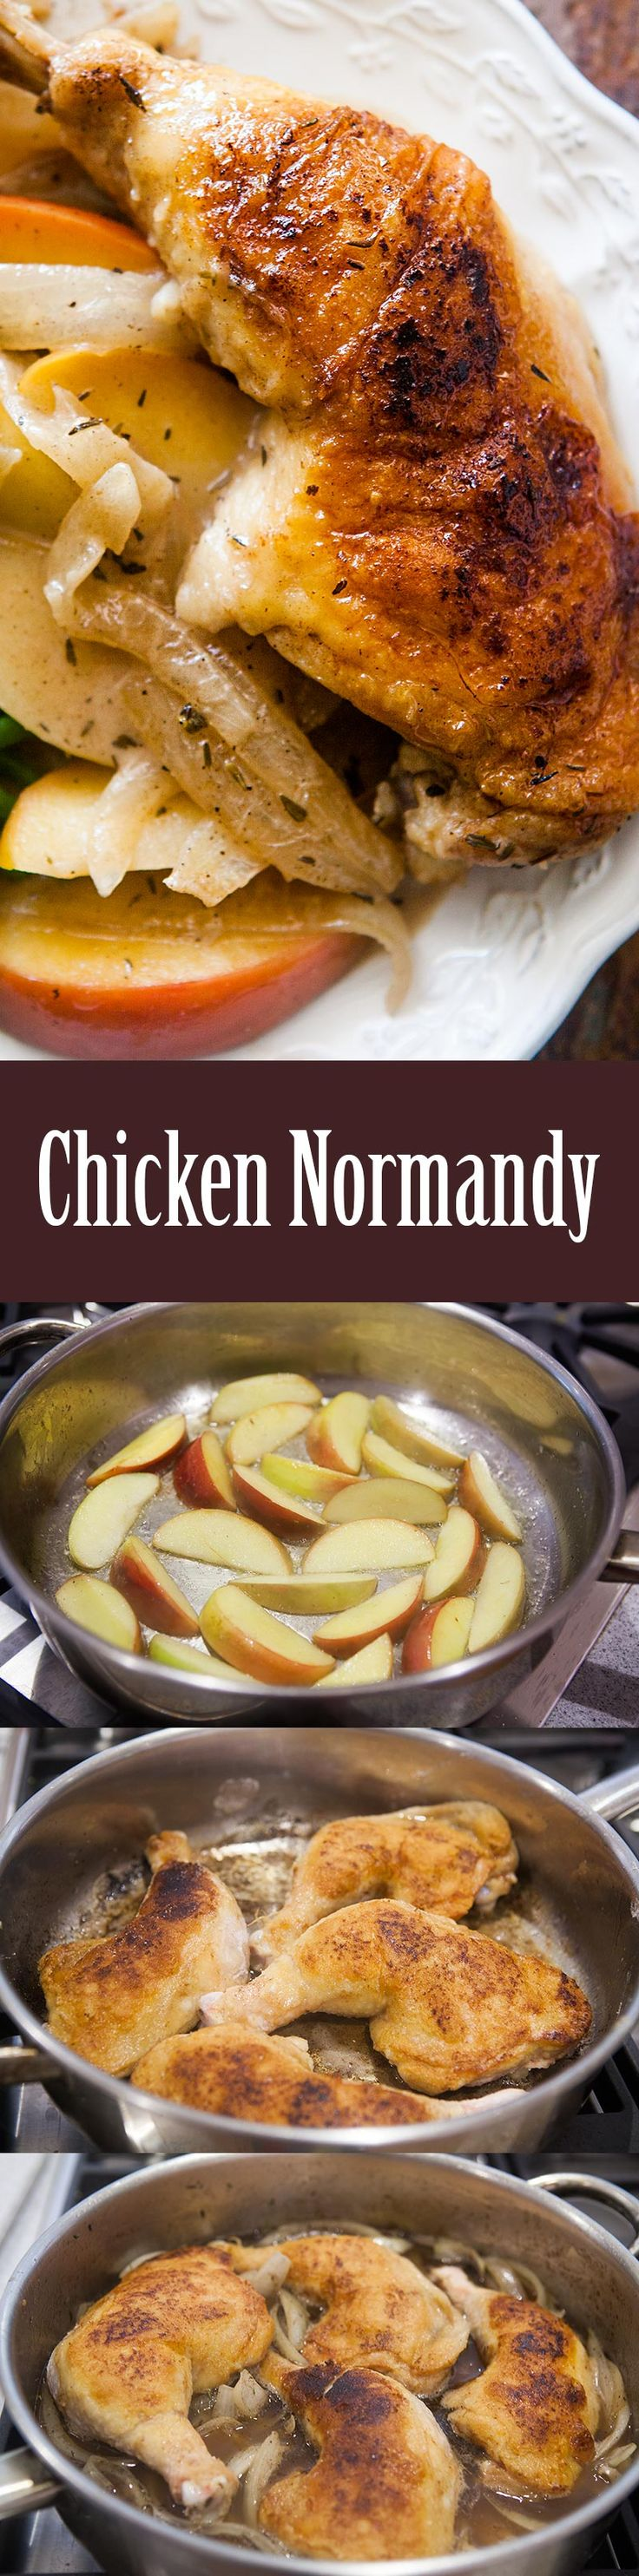 Chicken Normandy ~ Chicken browned and braised in apple cider and brandy, cooked with apple slices and onions, served with a cream sauce. ~ SimplyRecipes.com